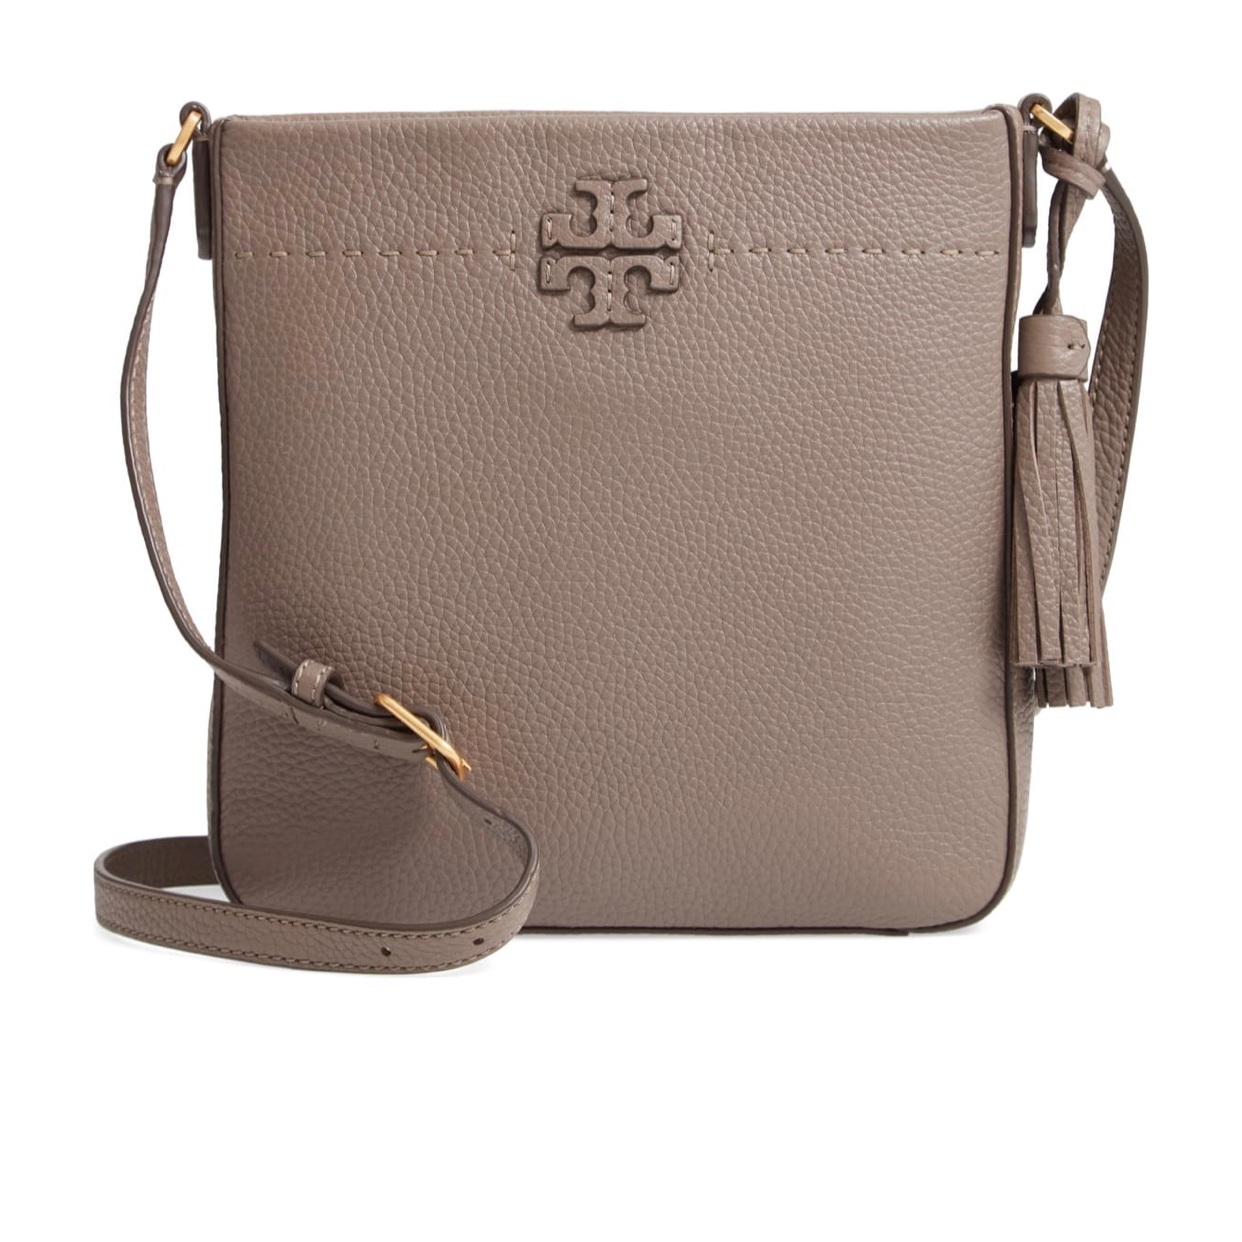 - This is my new favorite thing. I've had my eye on this bag since I saw someone wearing it in Target. It's a great size. Not overly big, but not too small. The color goes with almost everything and the crossbody style is a life saver for me with the kiddos.Find it here.